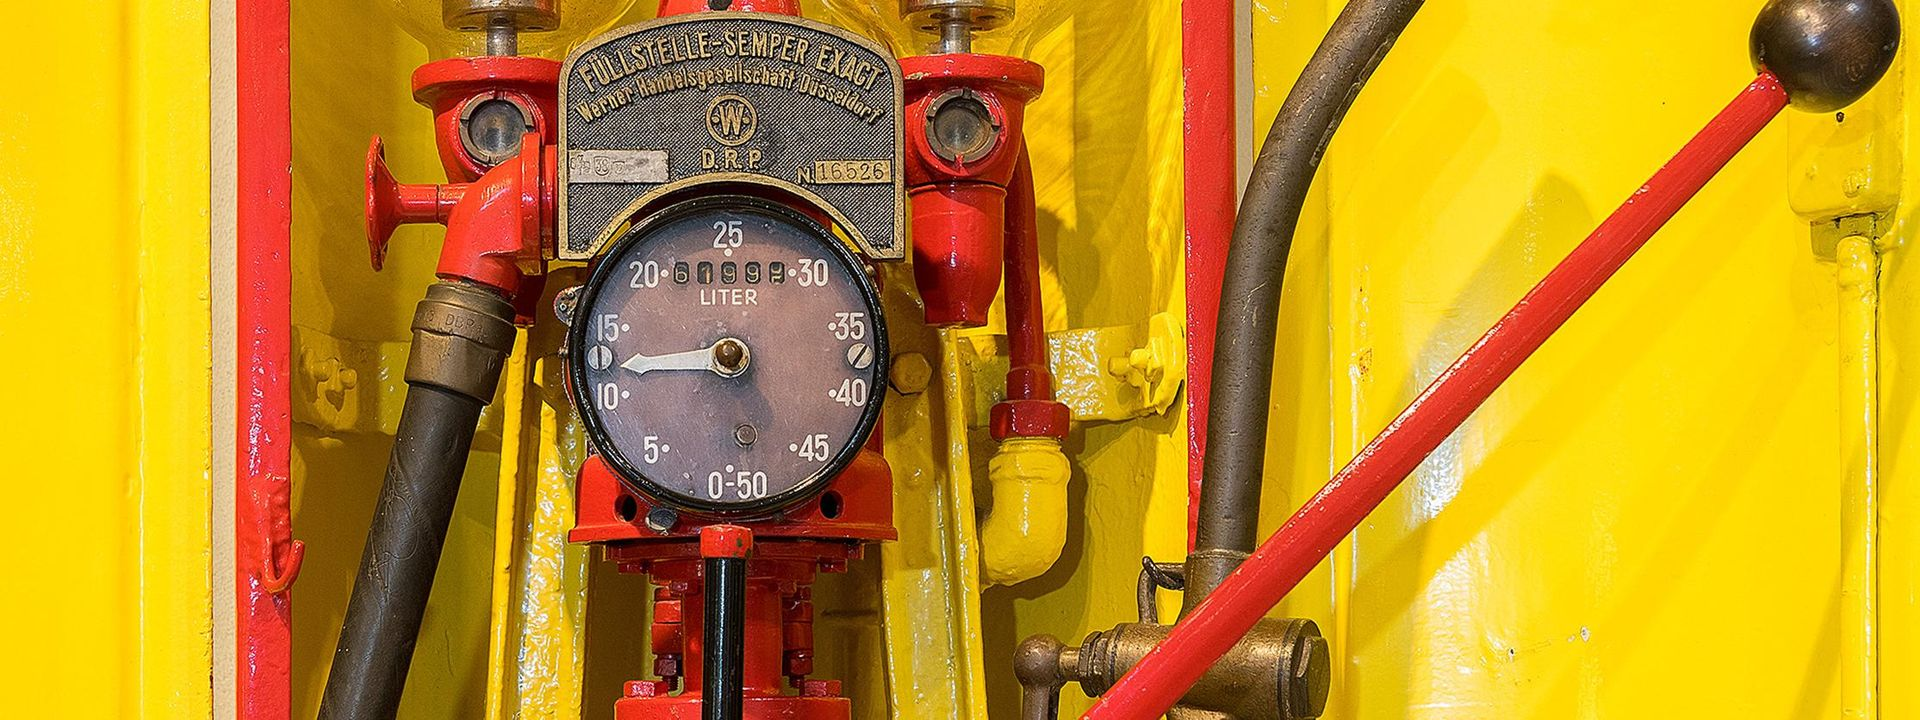 "A yellow and red fuel pump. The arrow on the analog gauge in the middle points to between ten and 15. On the metal plate above it, the words ""Füllstelle-Sempler Exact"" (""Precision Sempler Fuel Pump"") are written."